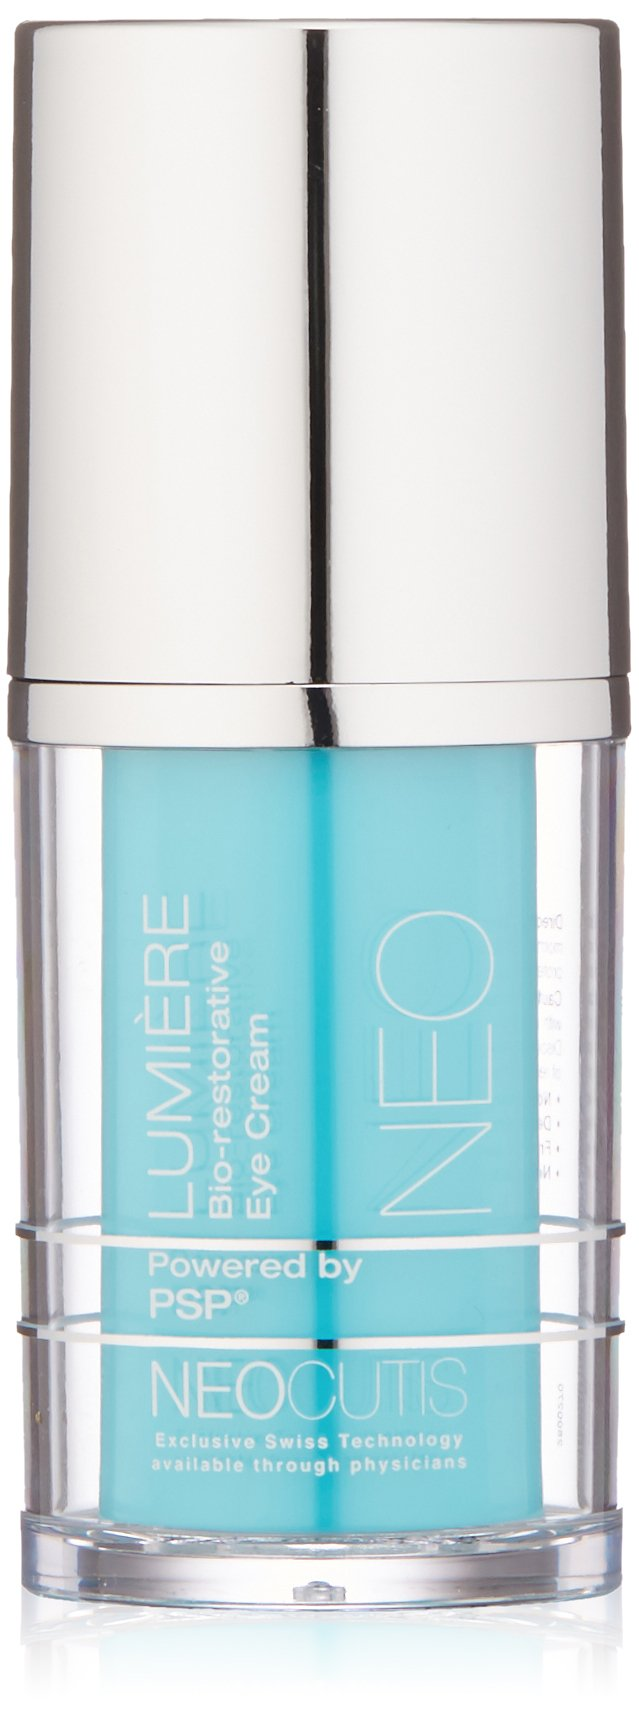 NEOCUTIS Lumière Bio-restorative Eye Cream, 0.5 Fl Oz